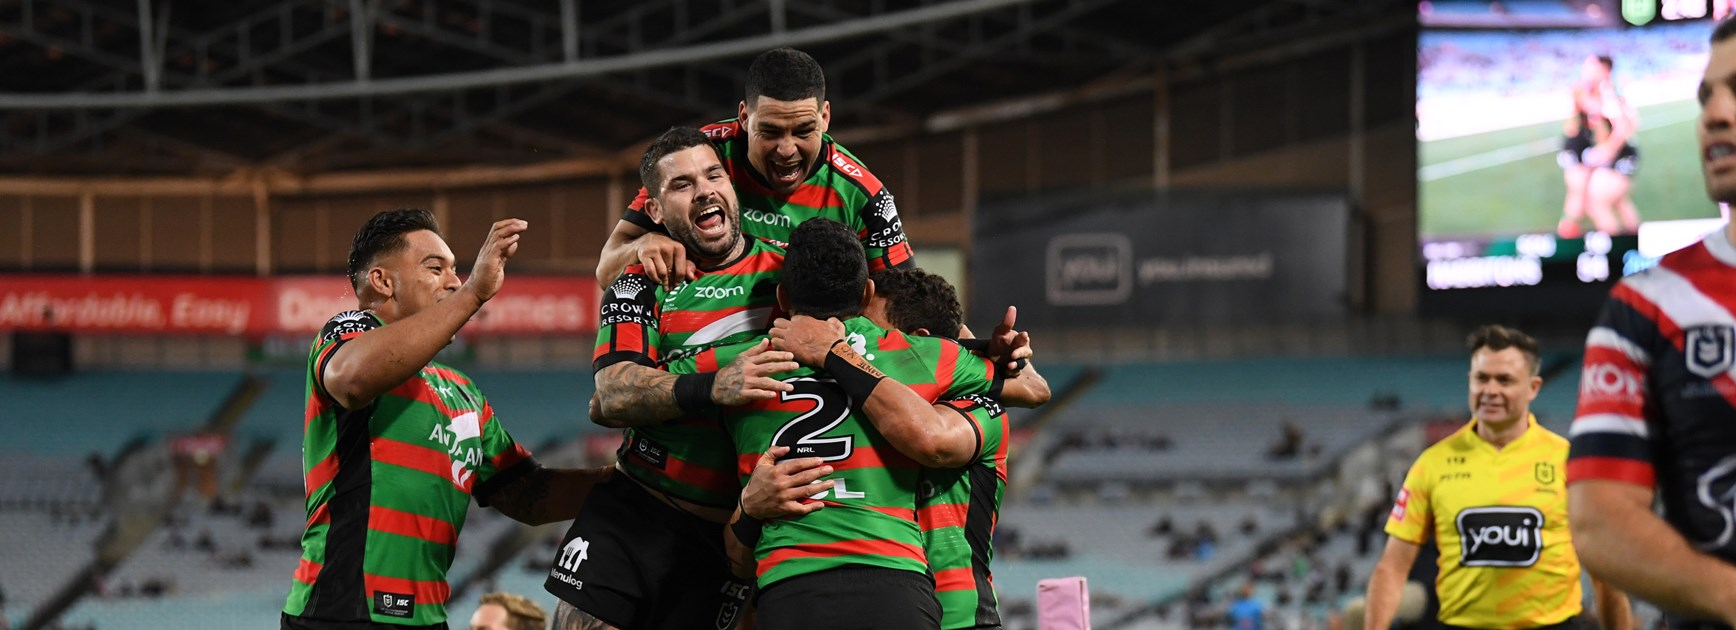 Alex Johnston is mobbed after his fifth try against the Roosters in round 20.